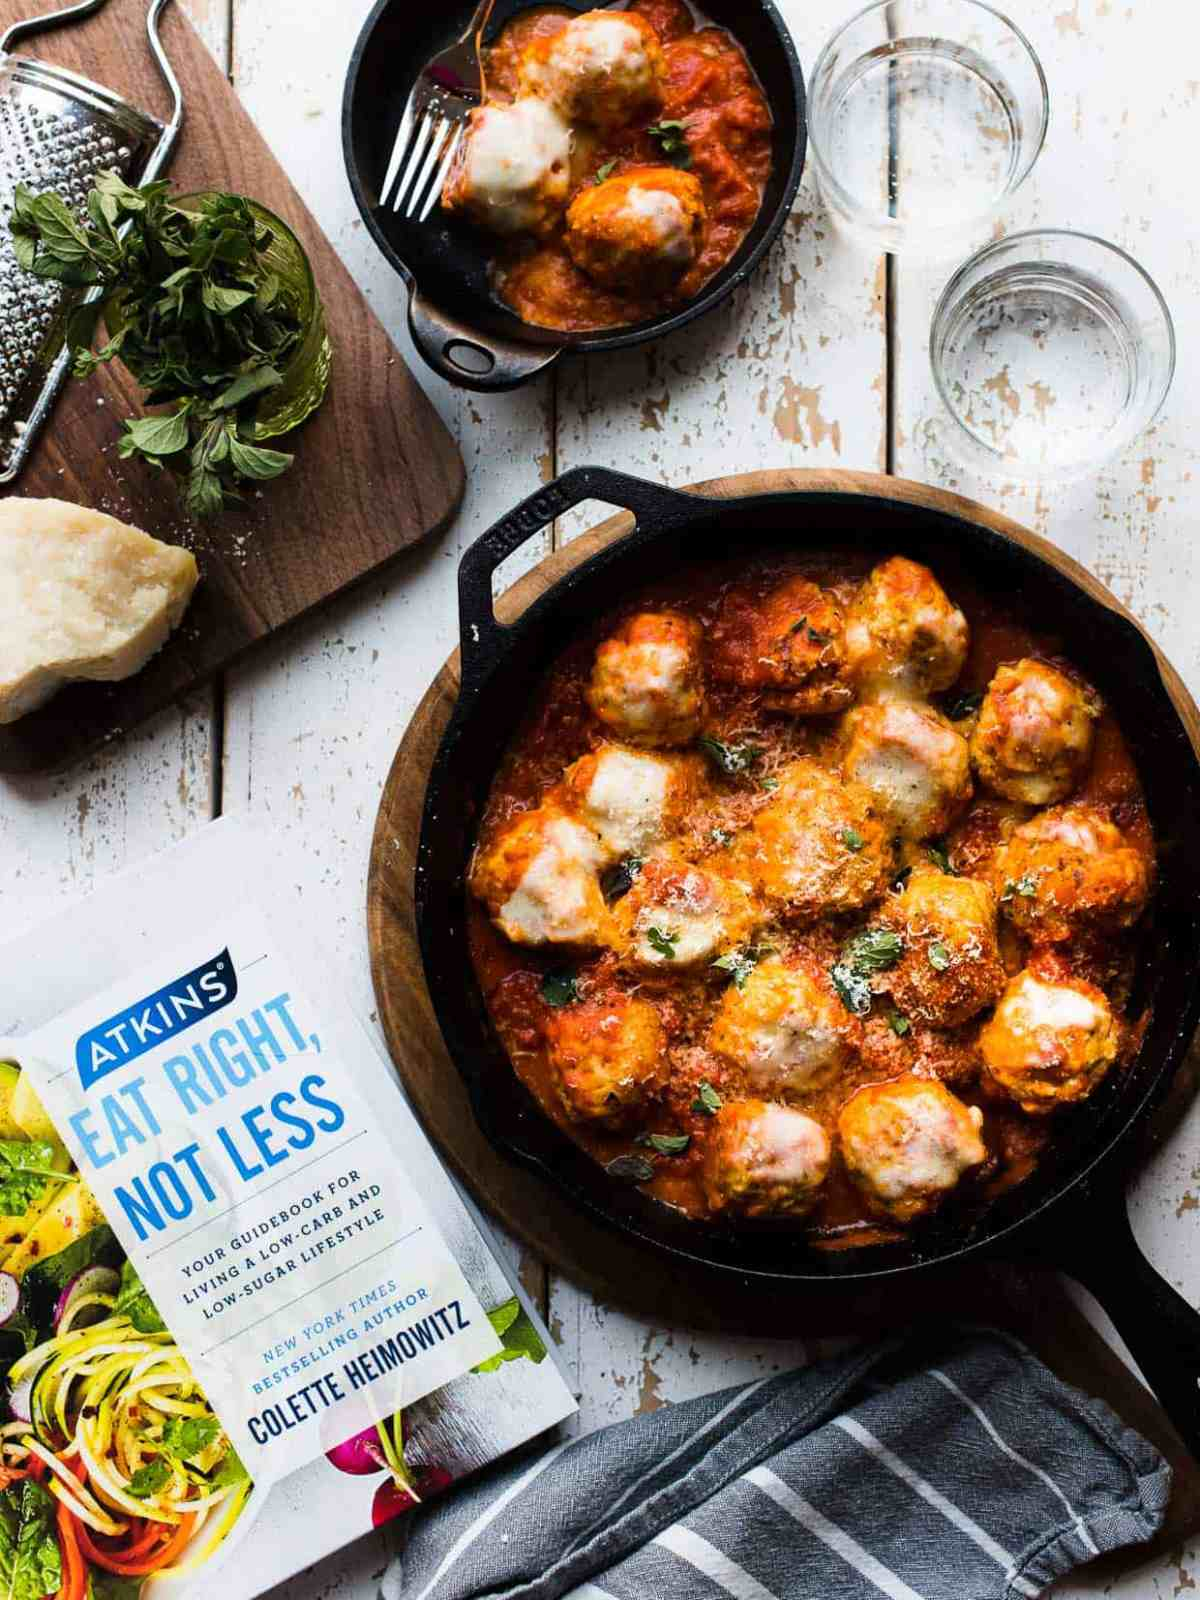 Chicken Parmesan Meatballs in a cast iron skillet next to a copy of Atkins: Eat Right, Not Less guidebook